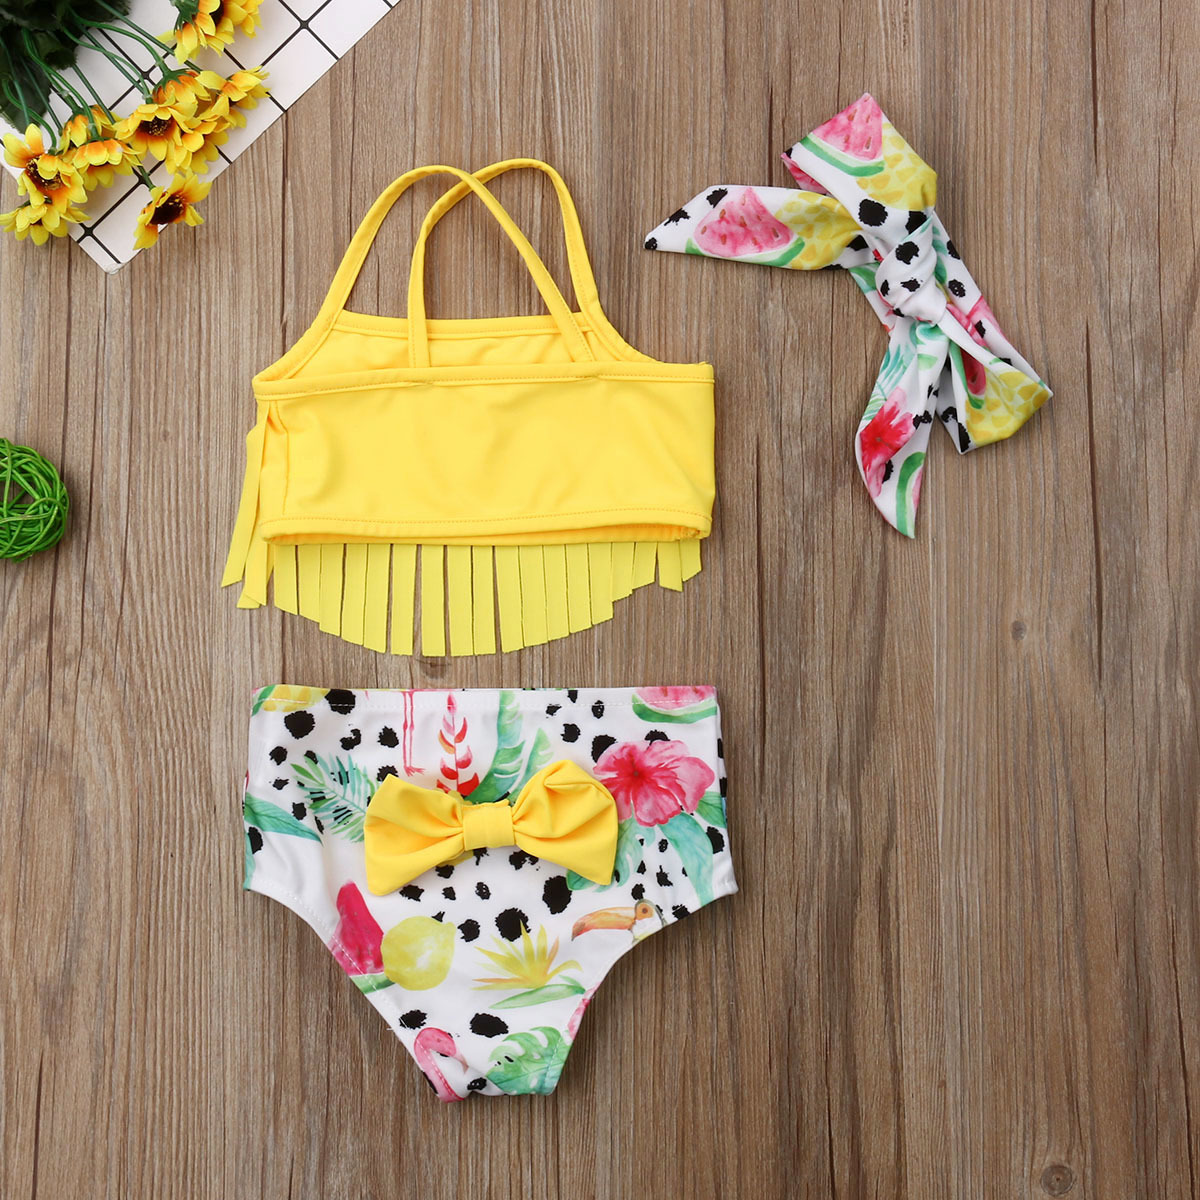 Newborn Infant Baby Girl Swimwear Suit Bird Floral Top Pant Outfit Beach Tankini image 5